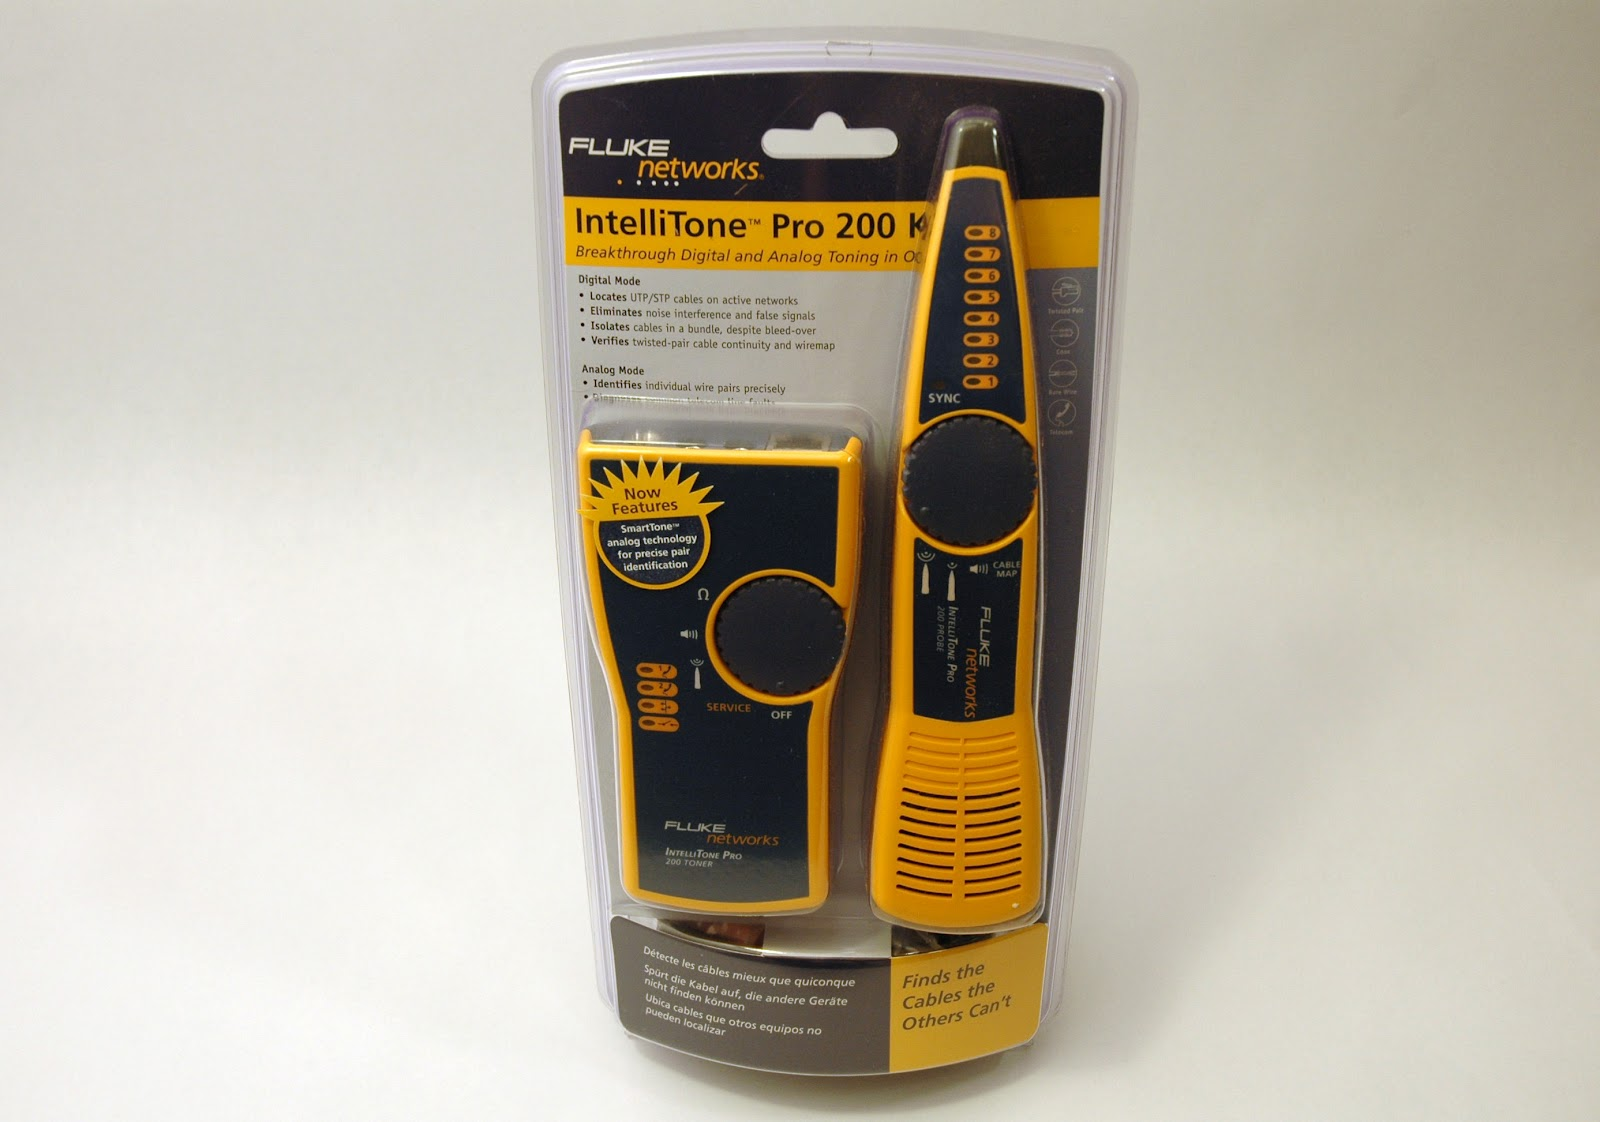 Fluke Intellitone Pro 200 kit